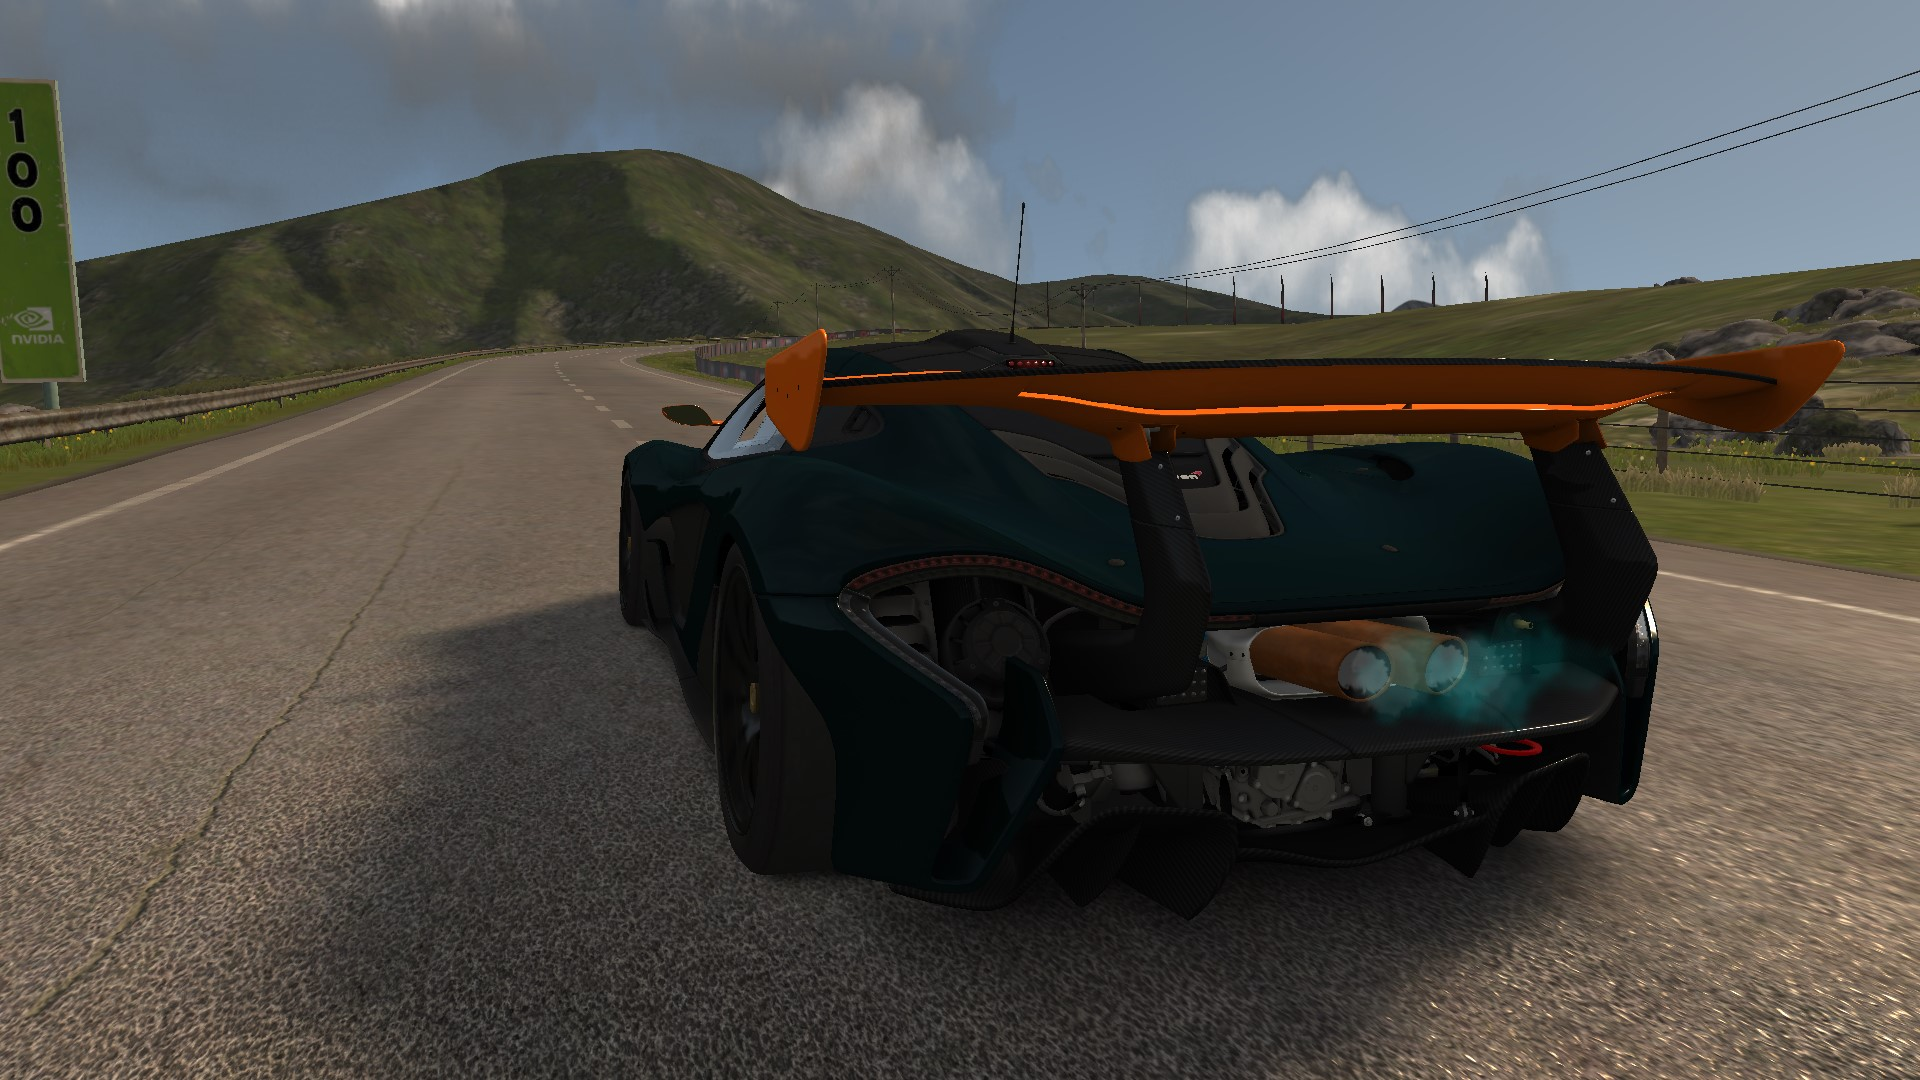 Screenshot_ks_mclaren_p1_gtr_ks_highlands_8-12-117-16-15-25.jpg